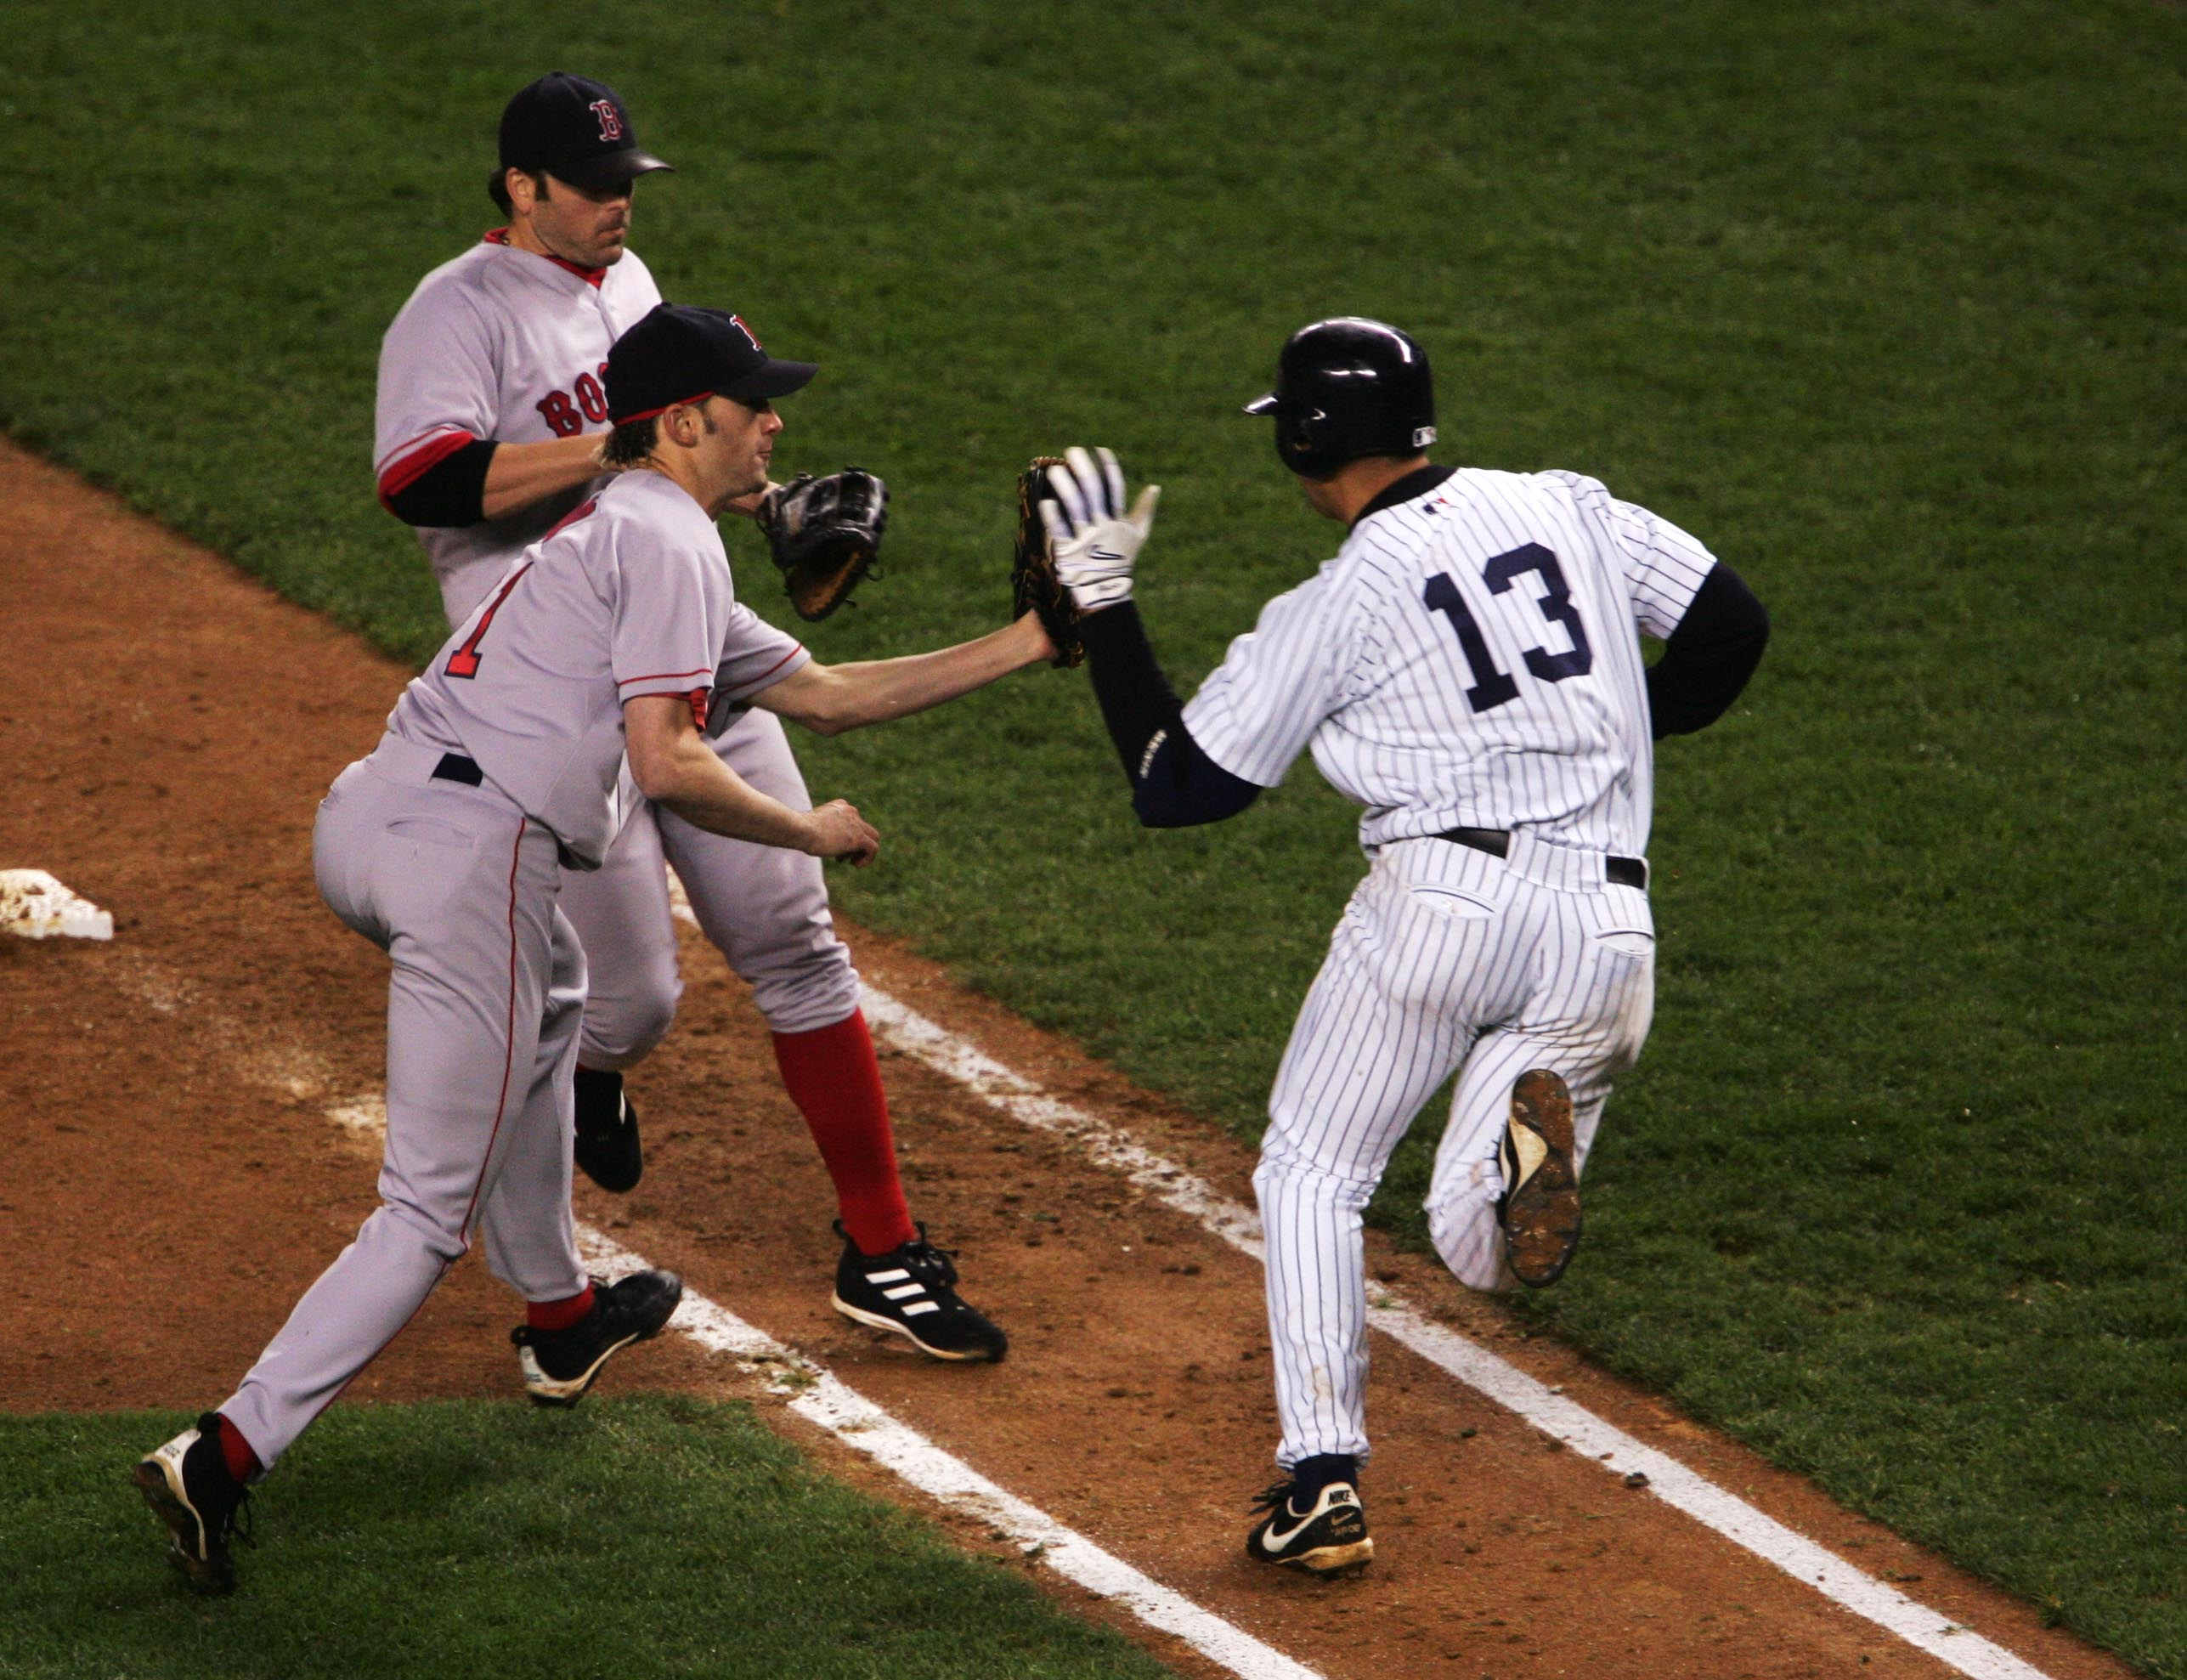 NEW YORK - OCTOBER 19:  Pitcher Bronson Arroyo #61 of the Boston Red Sox has the ball knocked out of his glove by batter Alex Rodriguez #13 of the New York Yankees on a tag-out at first base as first baseman Kevin Millar #15 looks on in the eighth inning